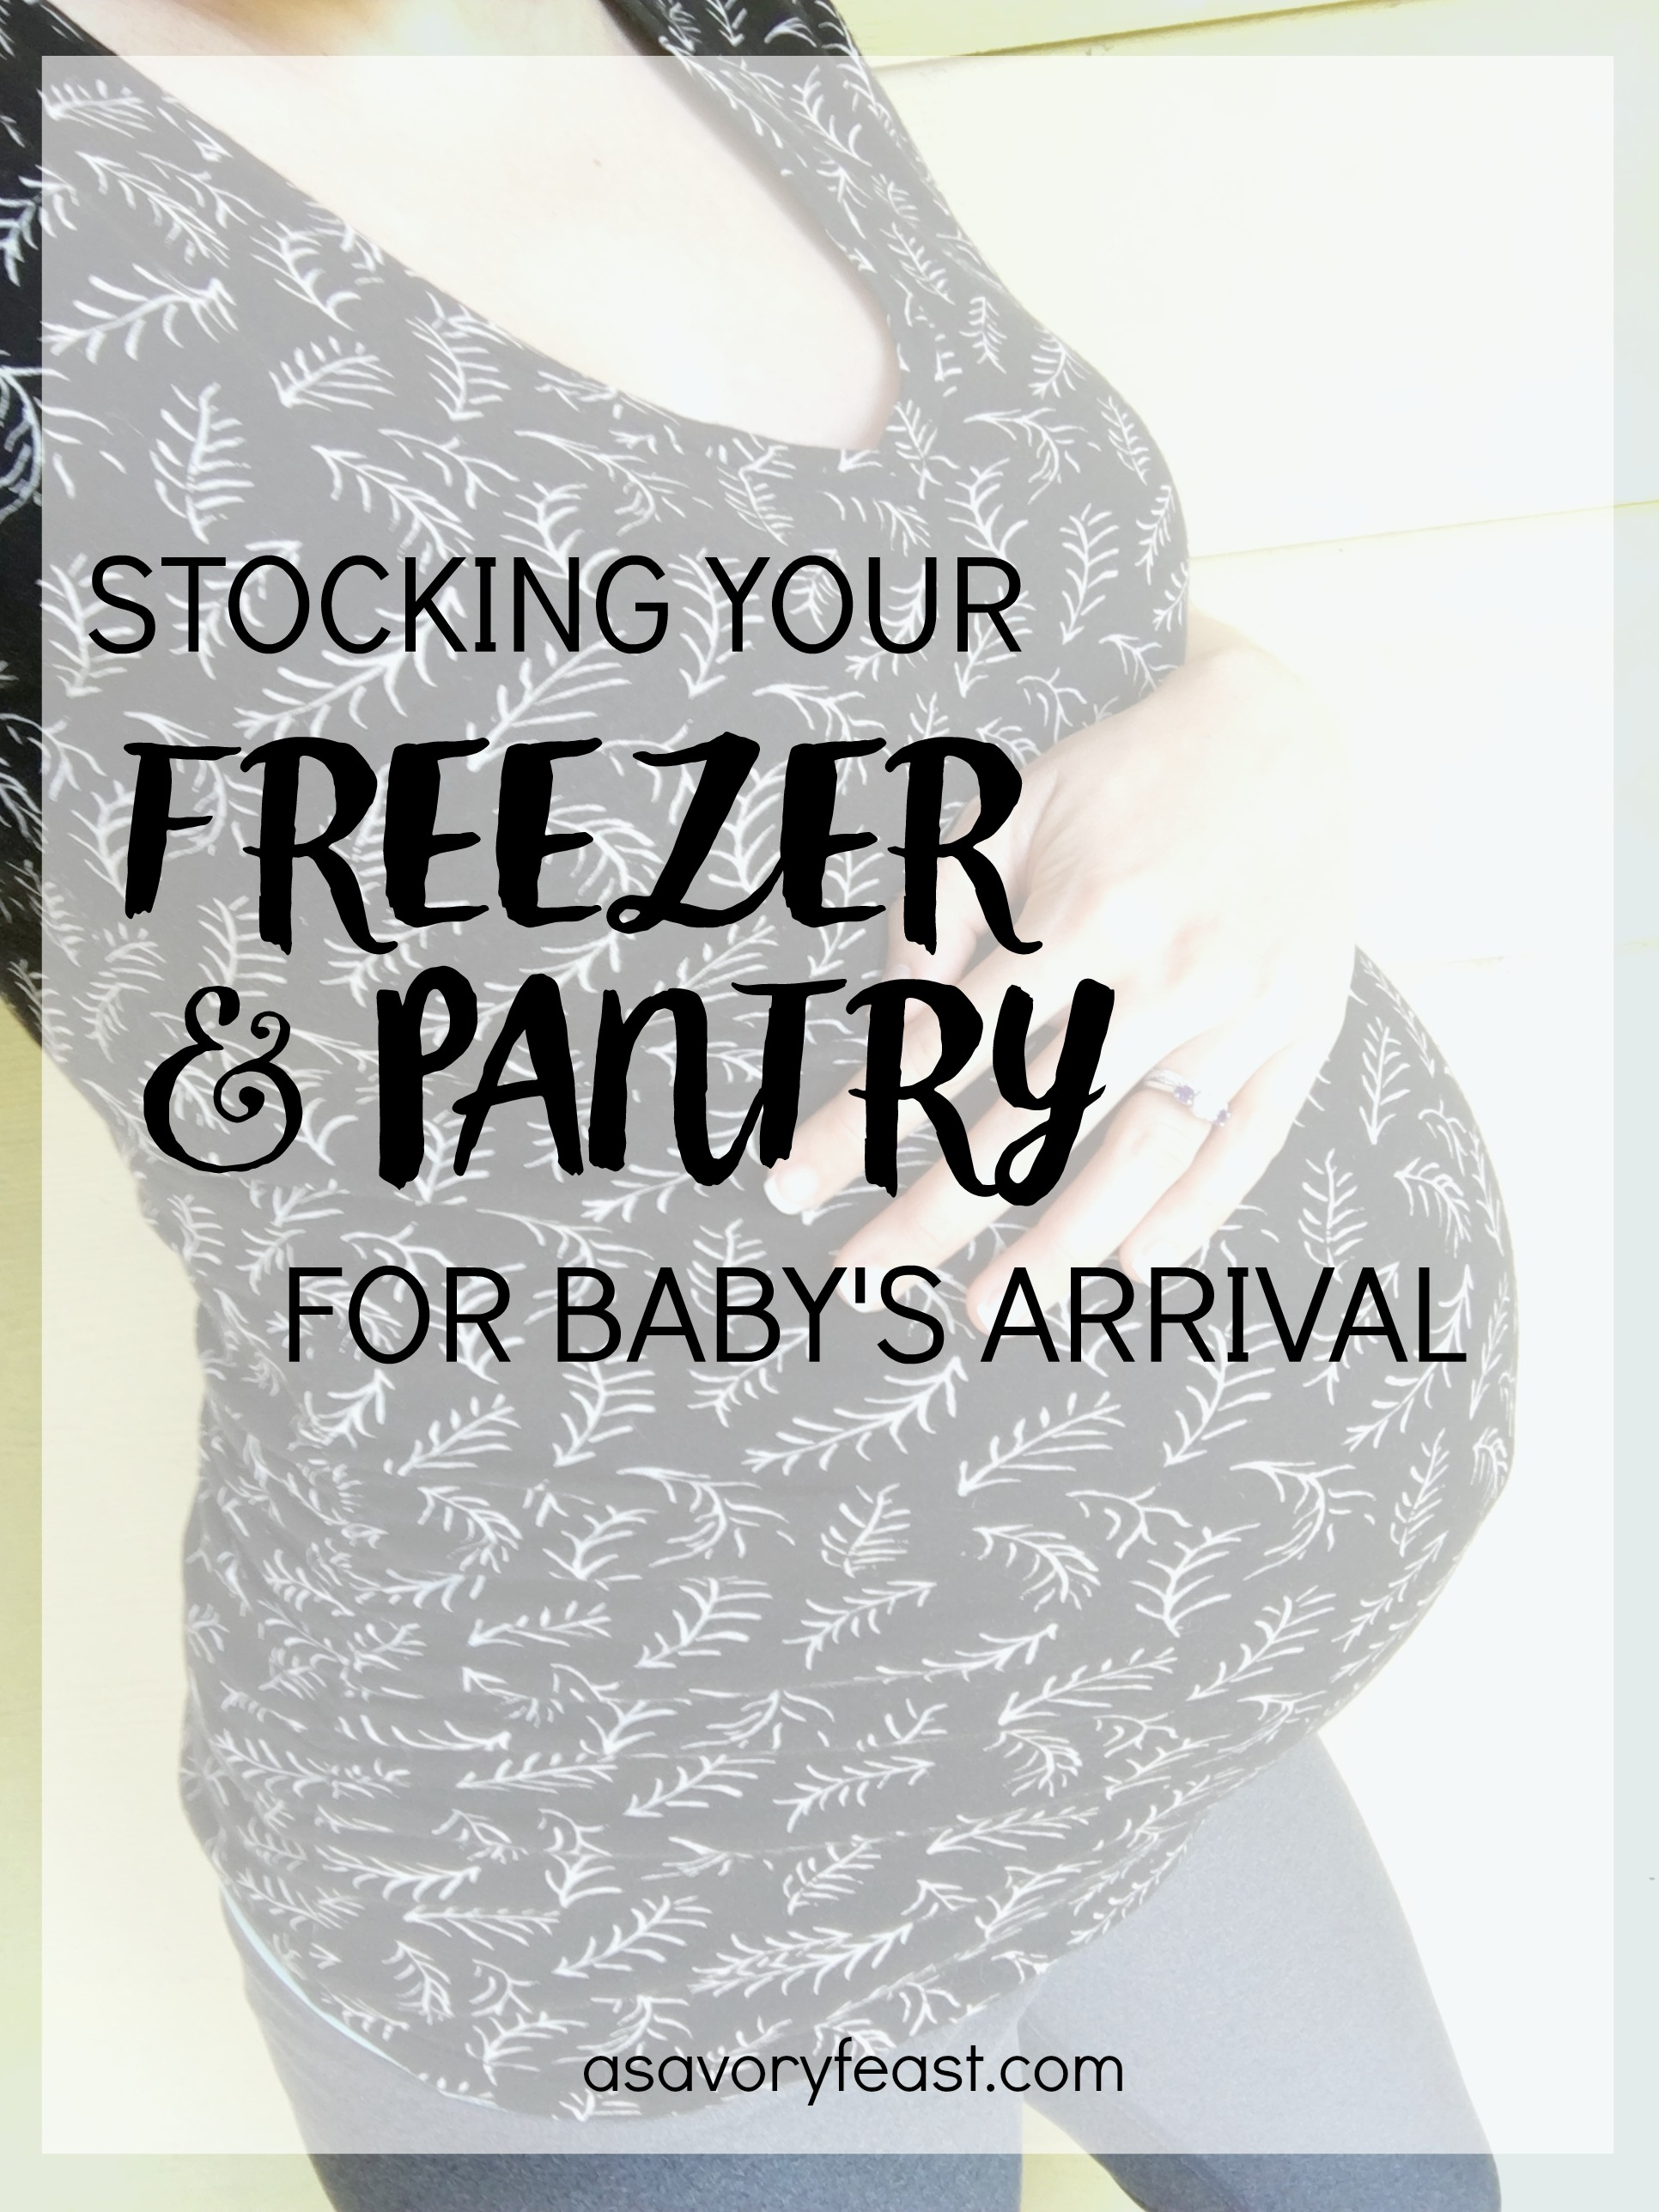 Stocking Your Freezer and Pantry for Baby